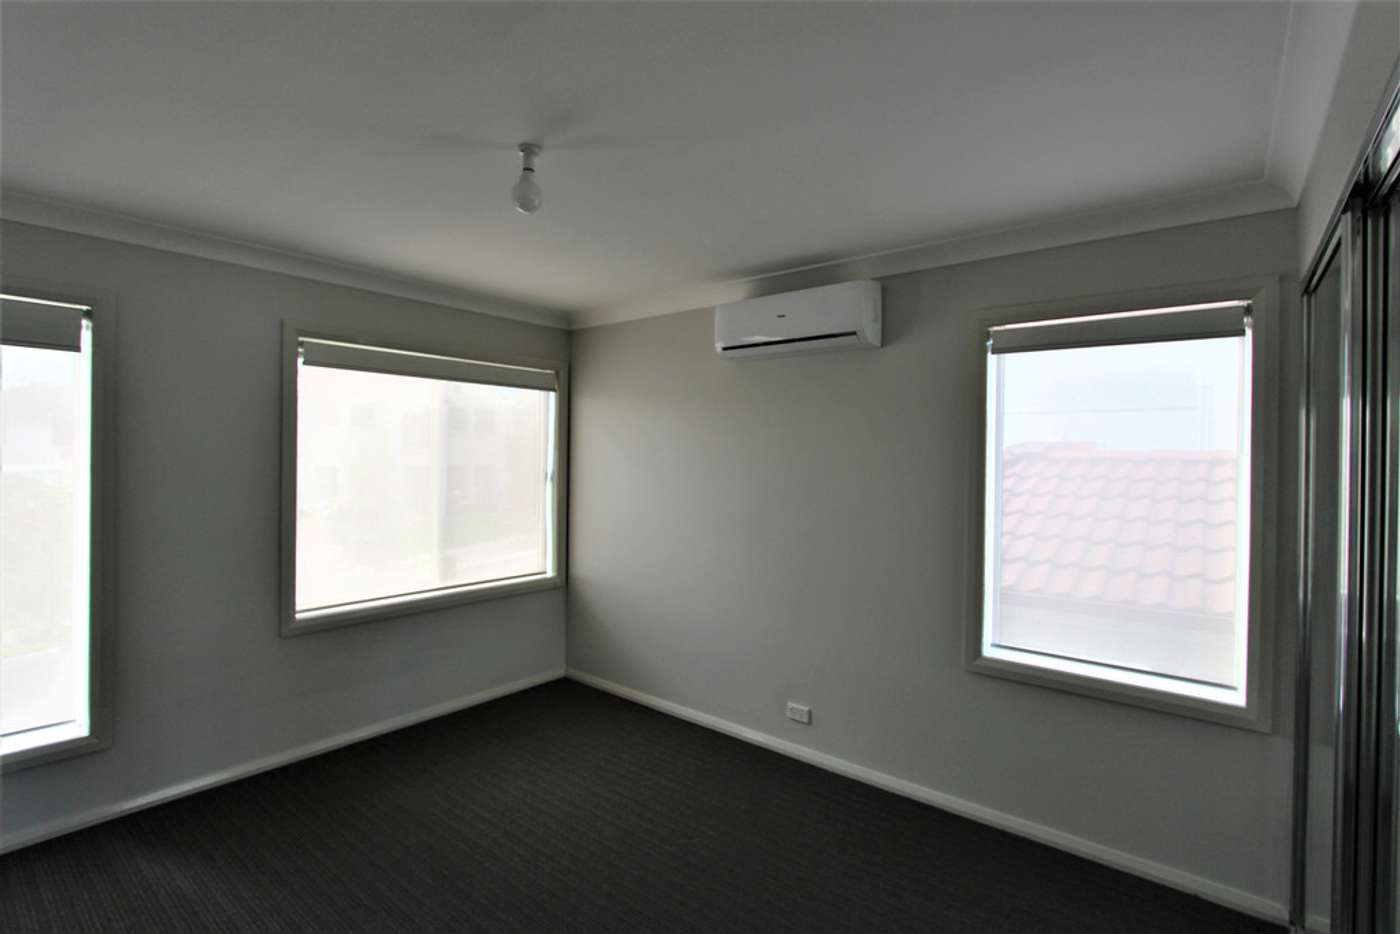 Sixth view of Homely house listing, 15 Hindostan Road, Glenfield NSW 2167